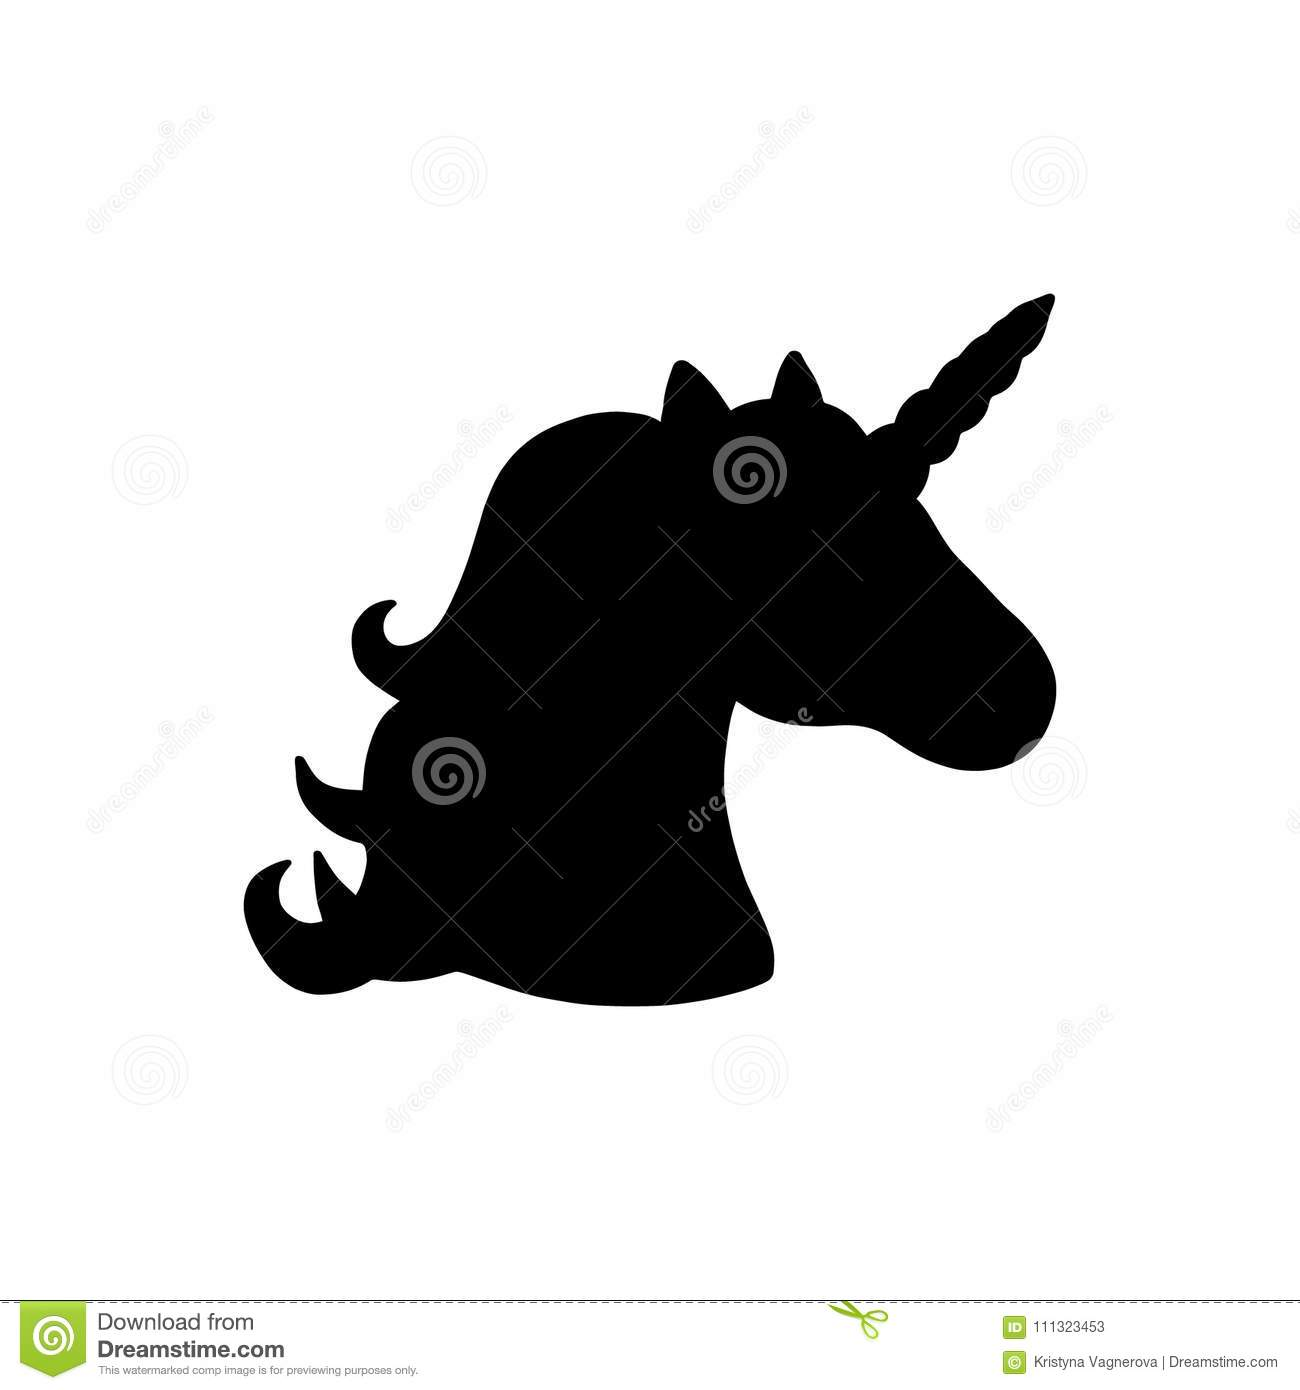 Black Unicorn Stock Illustrations 7 830 Black Unicorn Stock Illustrations Vectors Clipart Dreamstime